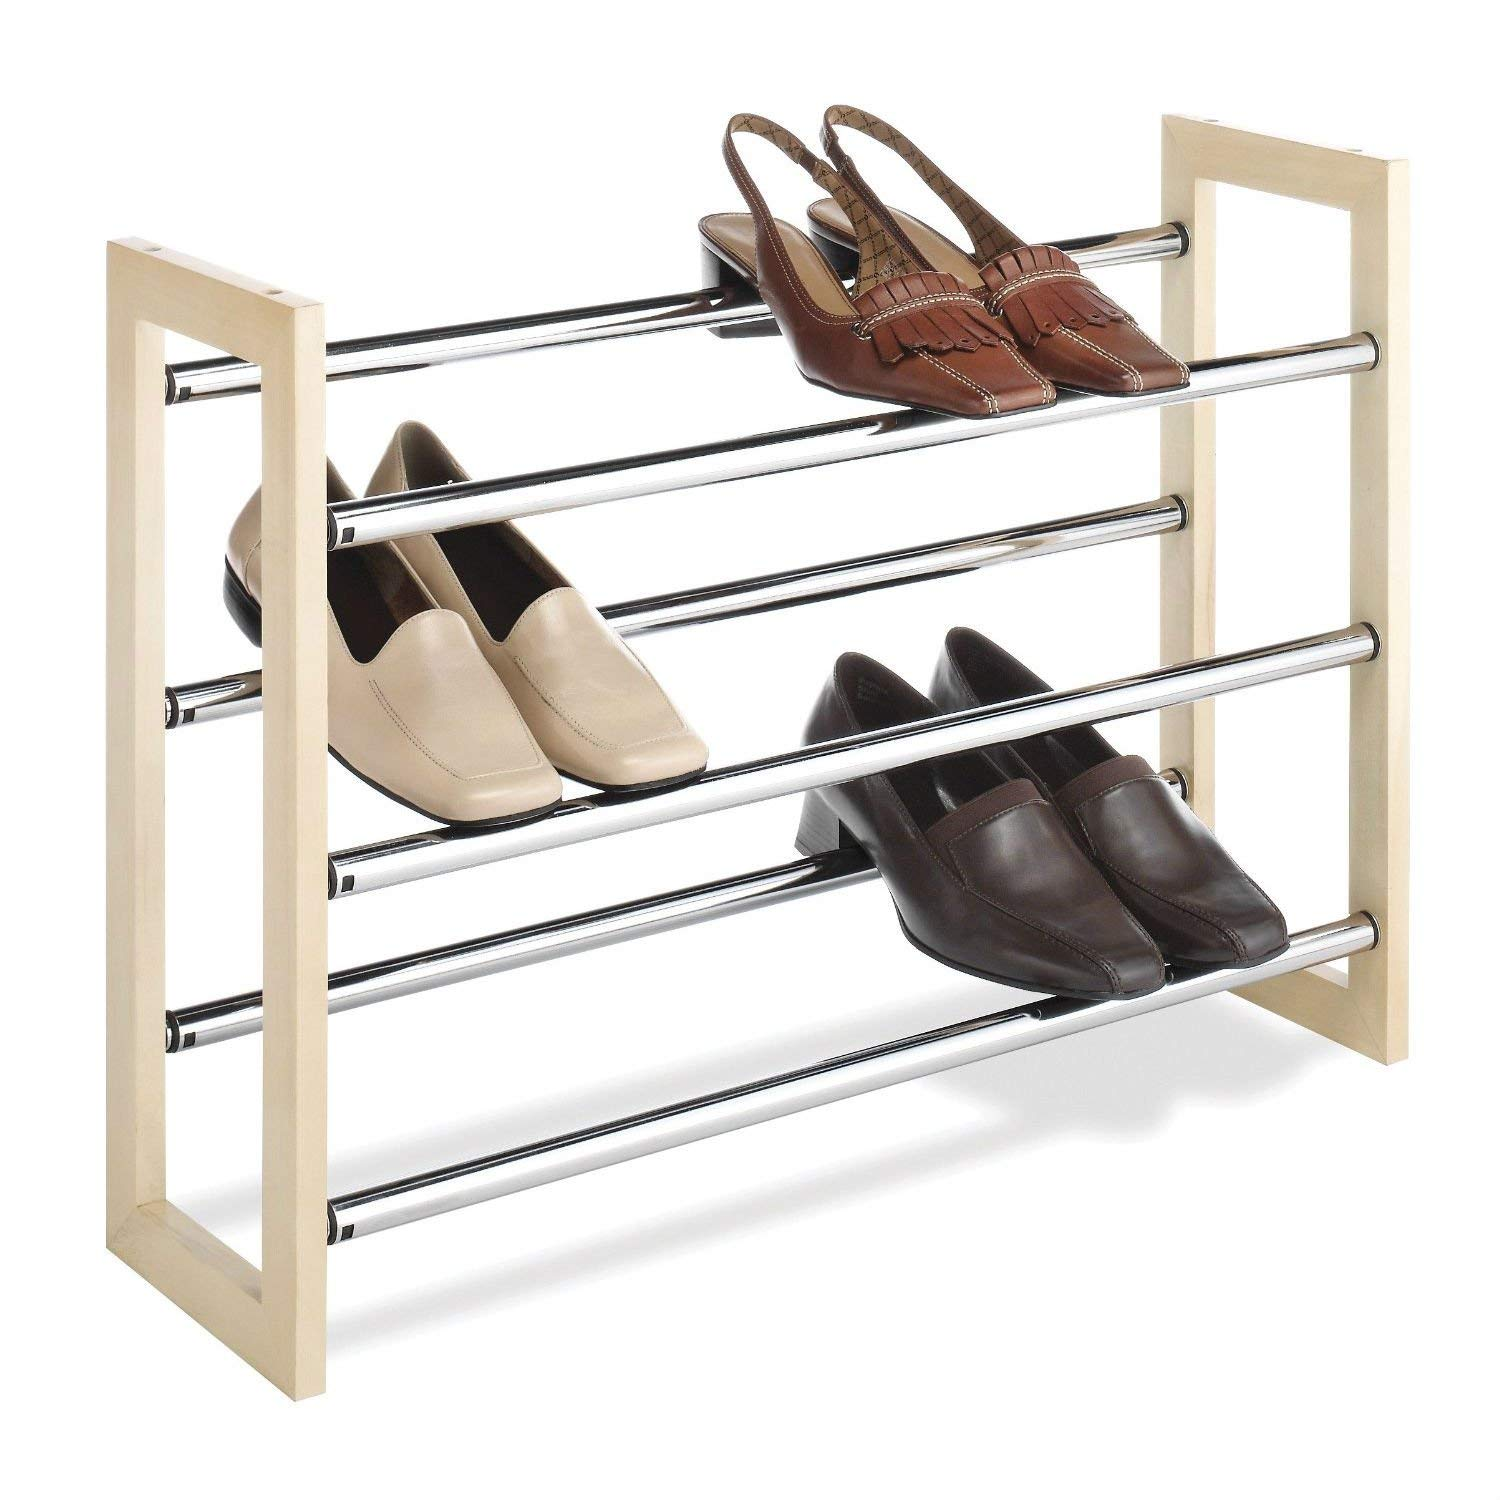 StarSun Depot 3-Tier Stackable & Expandable Shoe Rack in Wood & Chrome Metal